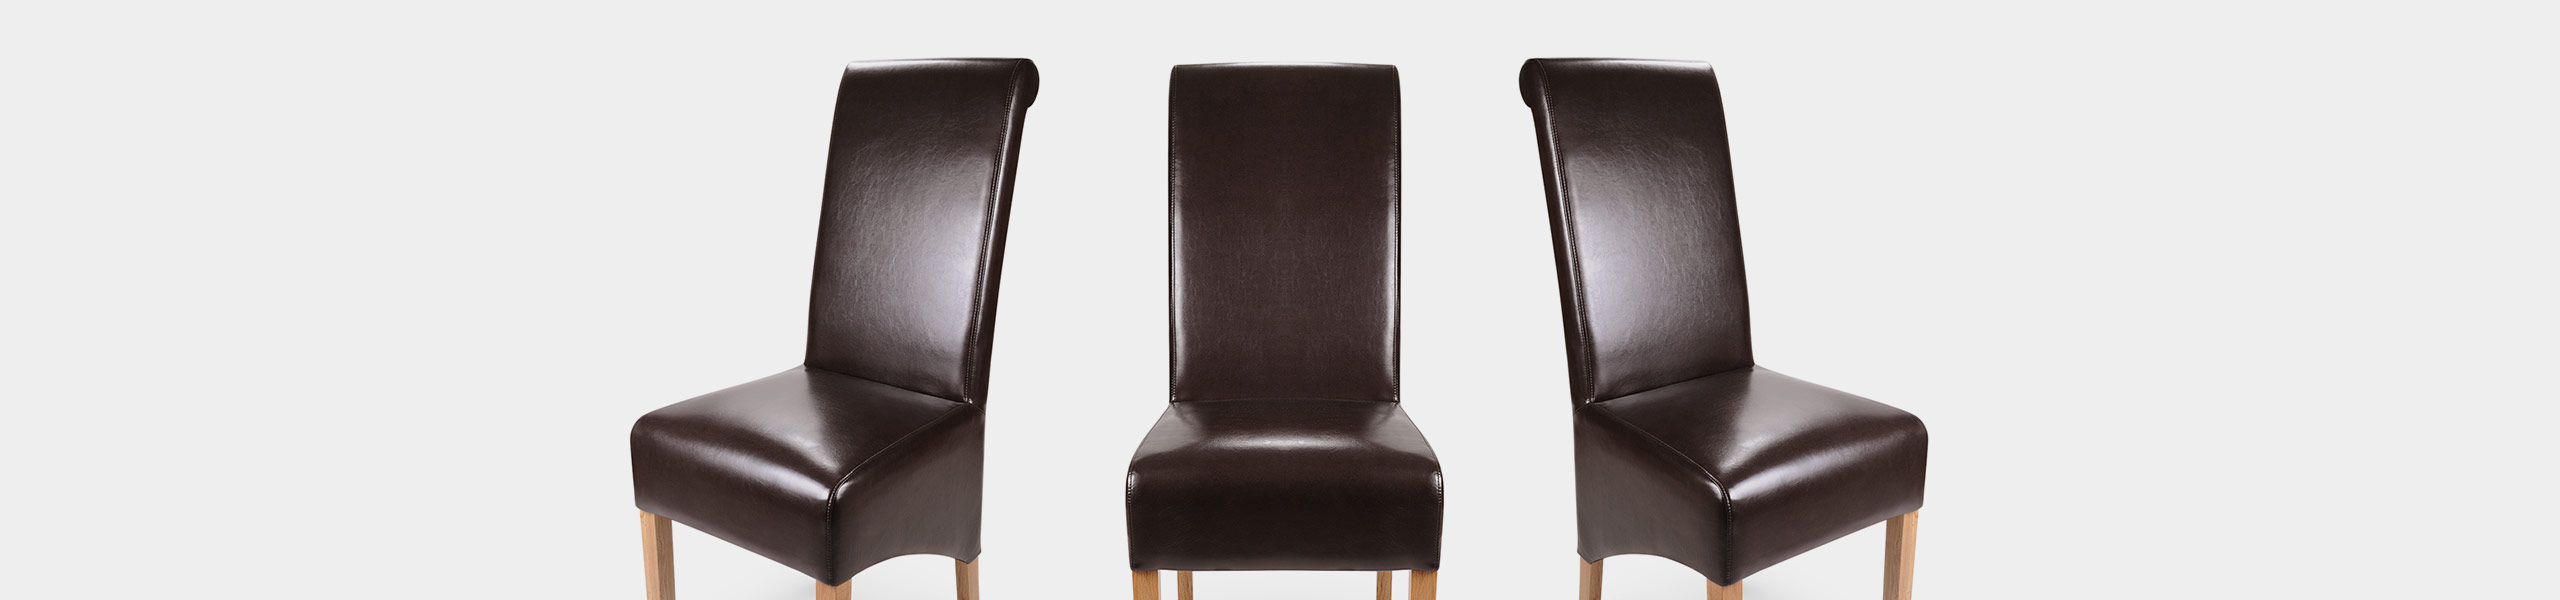 Krista Dining Chair Brown Leather Video Banner